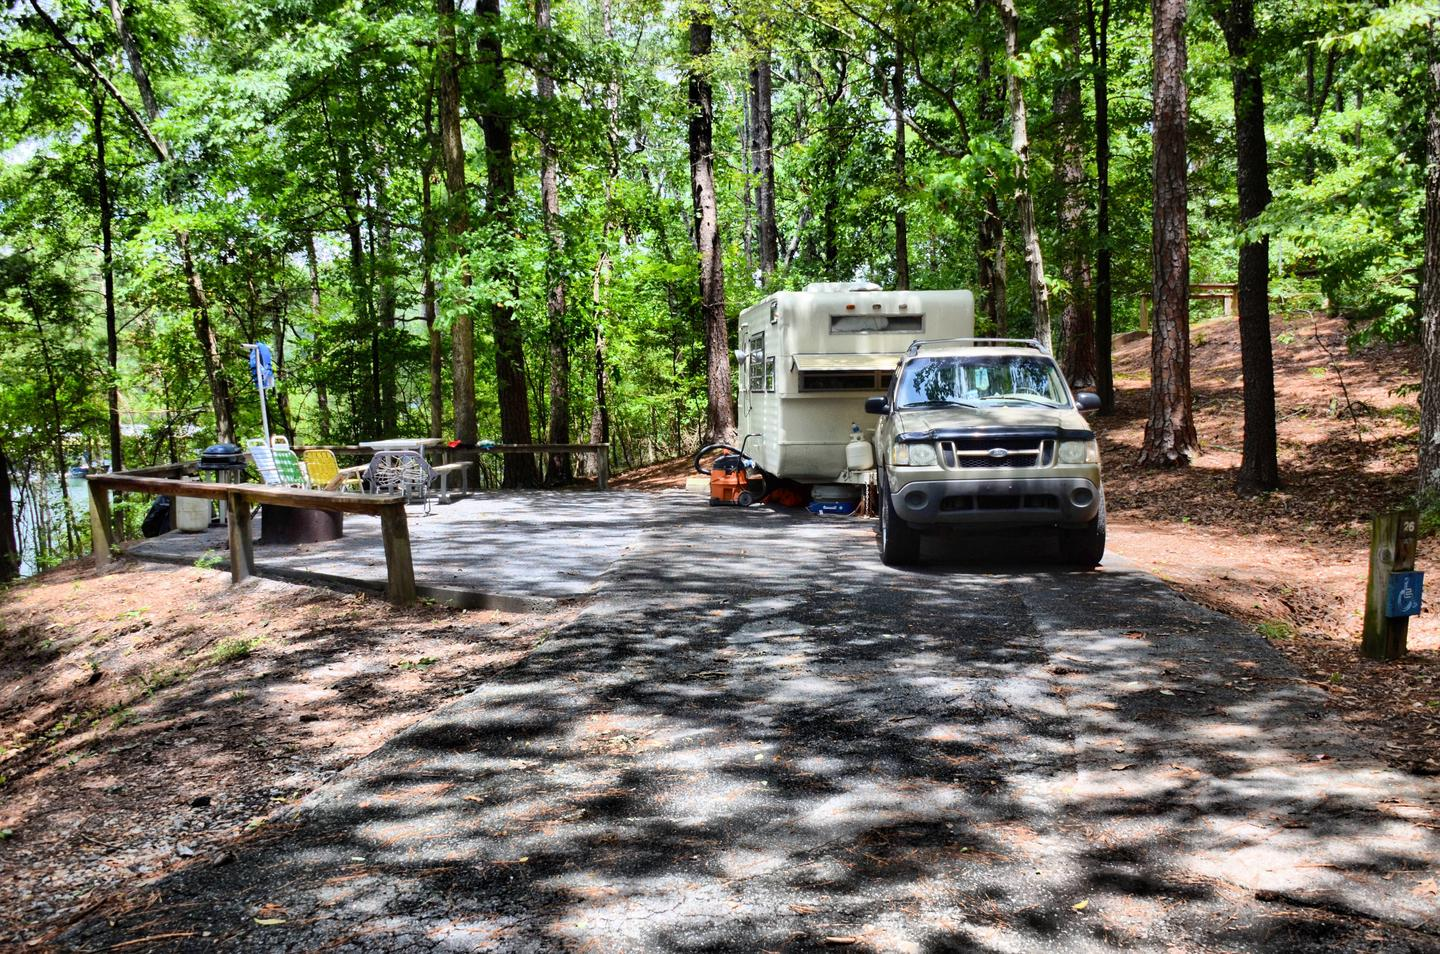 Awning-side clearance.McKinney Campground, campsite 26.